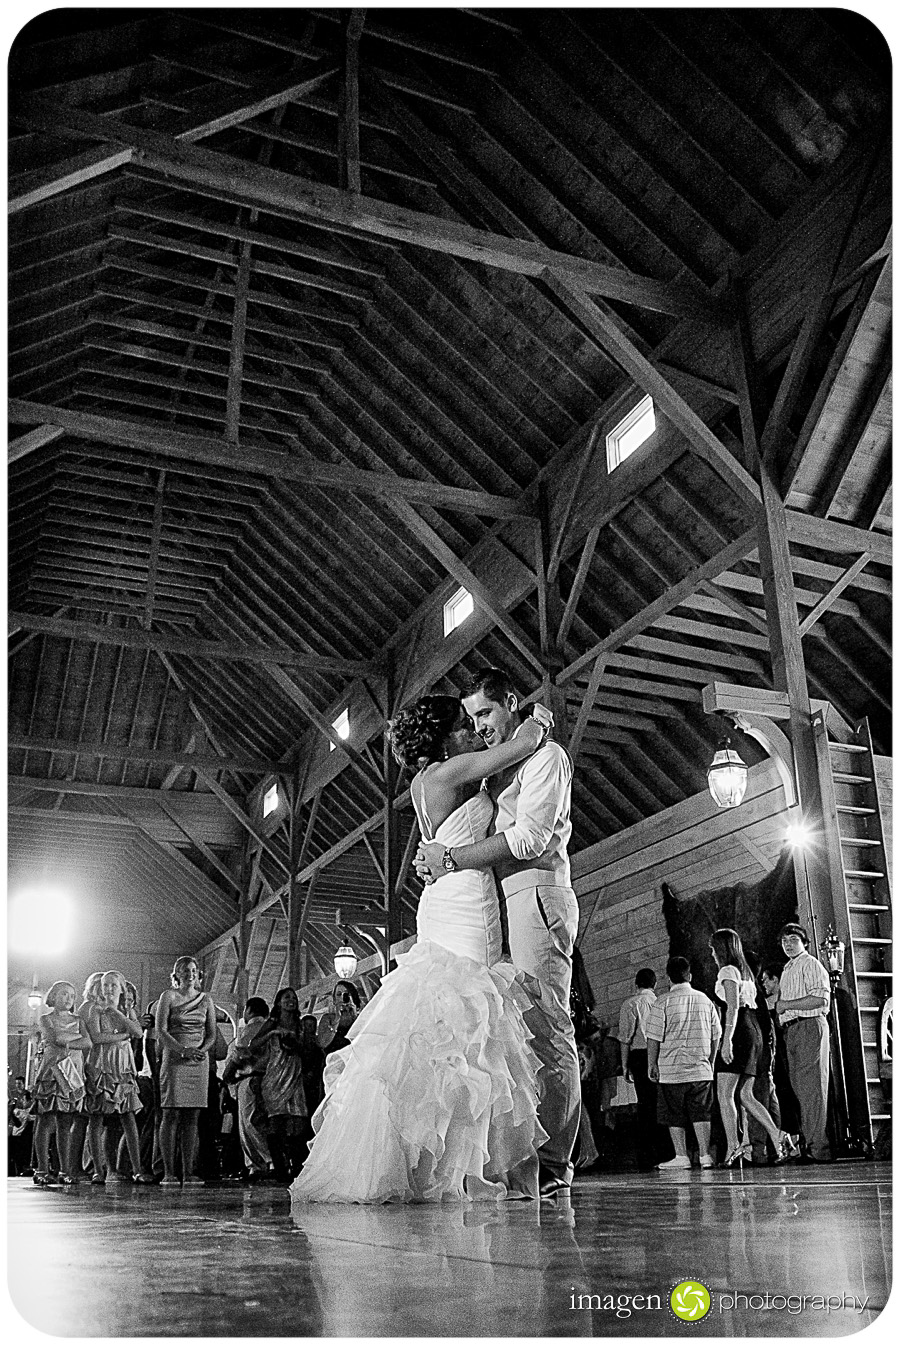 Red Run Bison Farm Wedding Marshallville Ohio, Wedding Photography, Reception